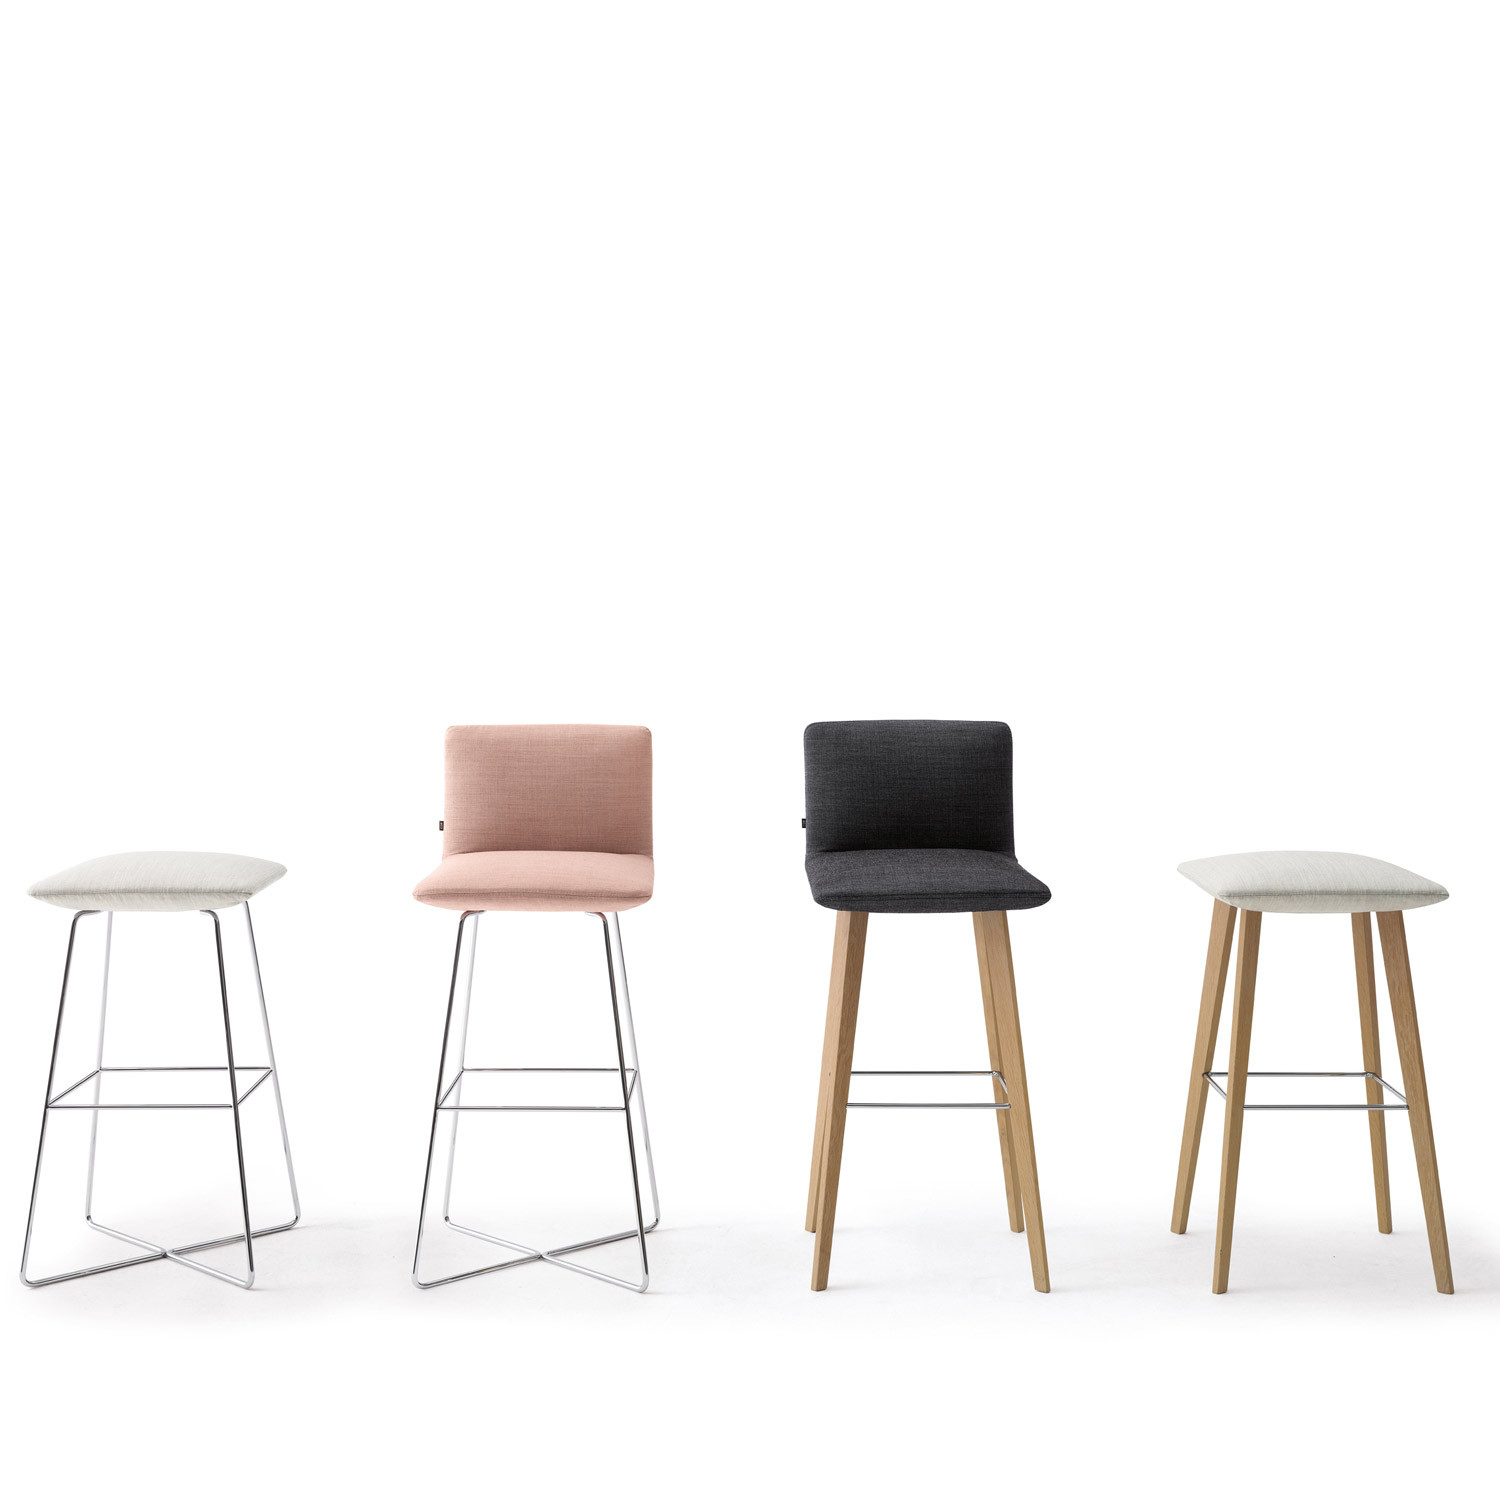 Jalis Bar Stools